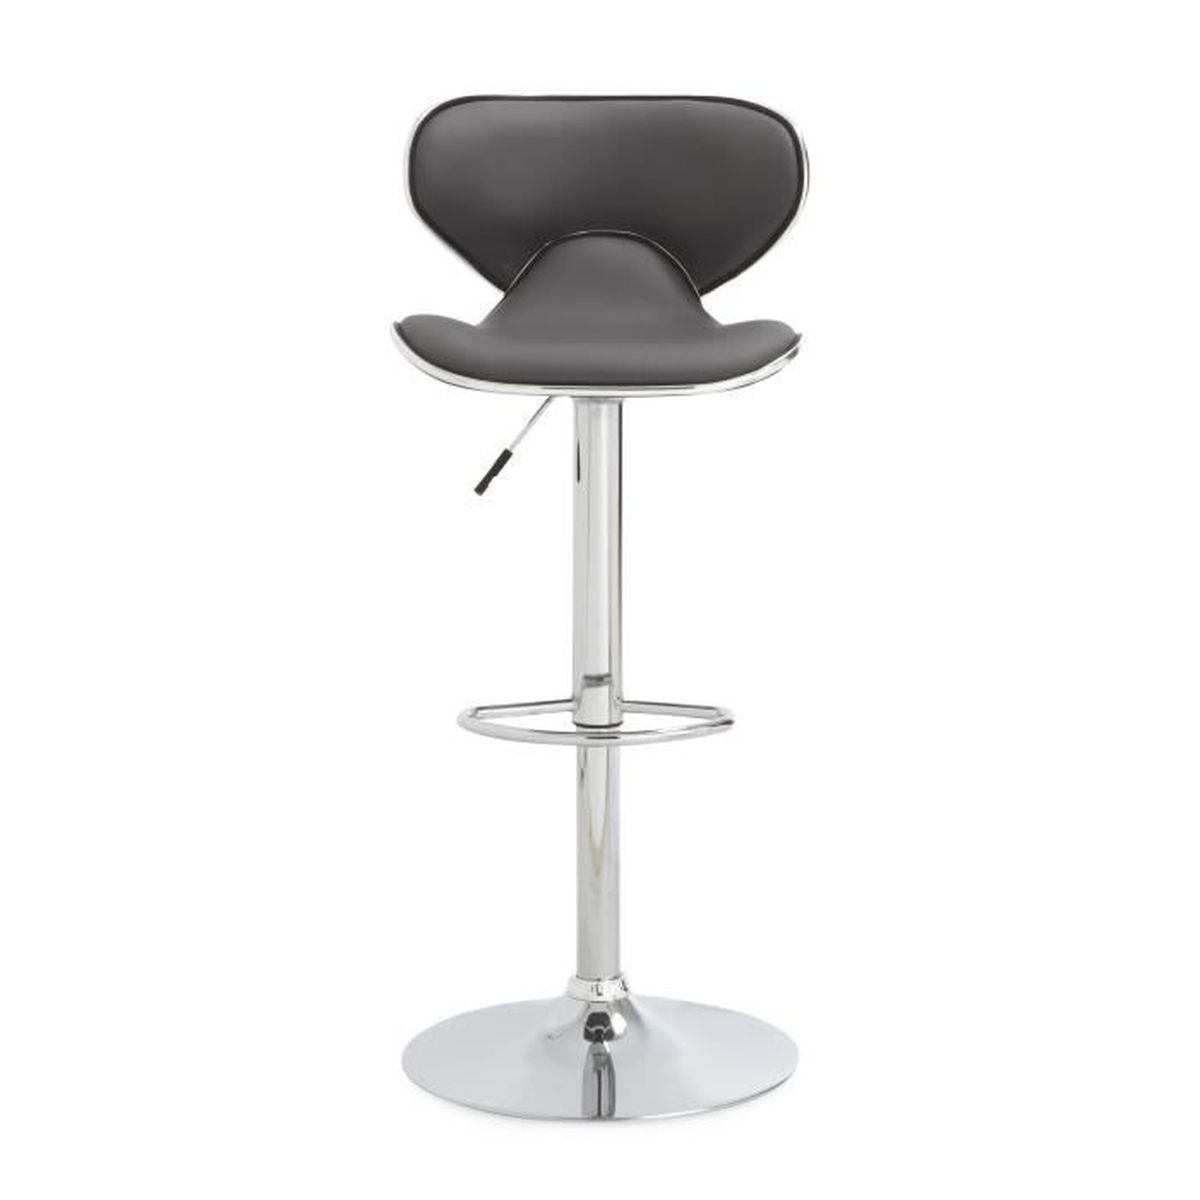 tabouret de bar alinea achat vente tabouret de bar alinea pas cher cdiscount. Black Bedroom Furniture Sets. Home Design Ideas